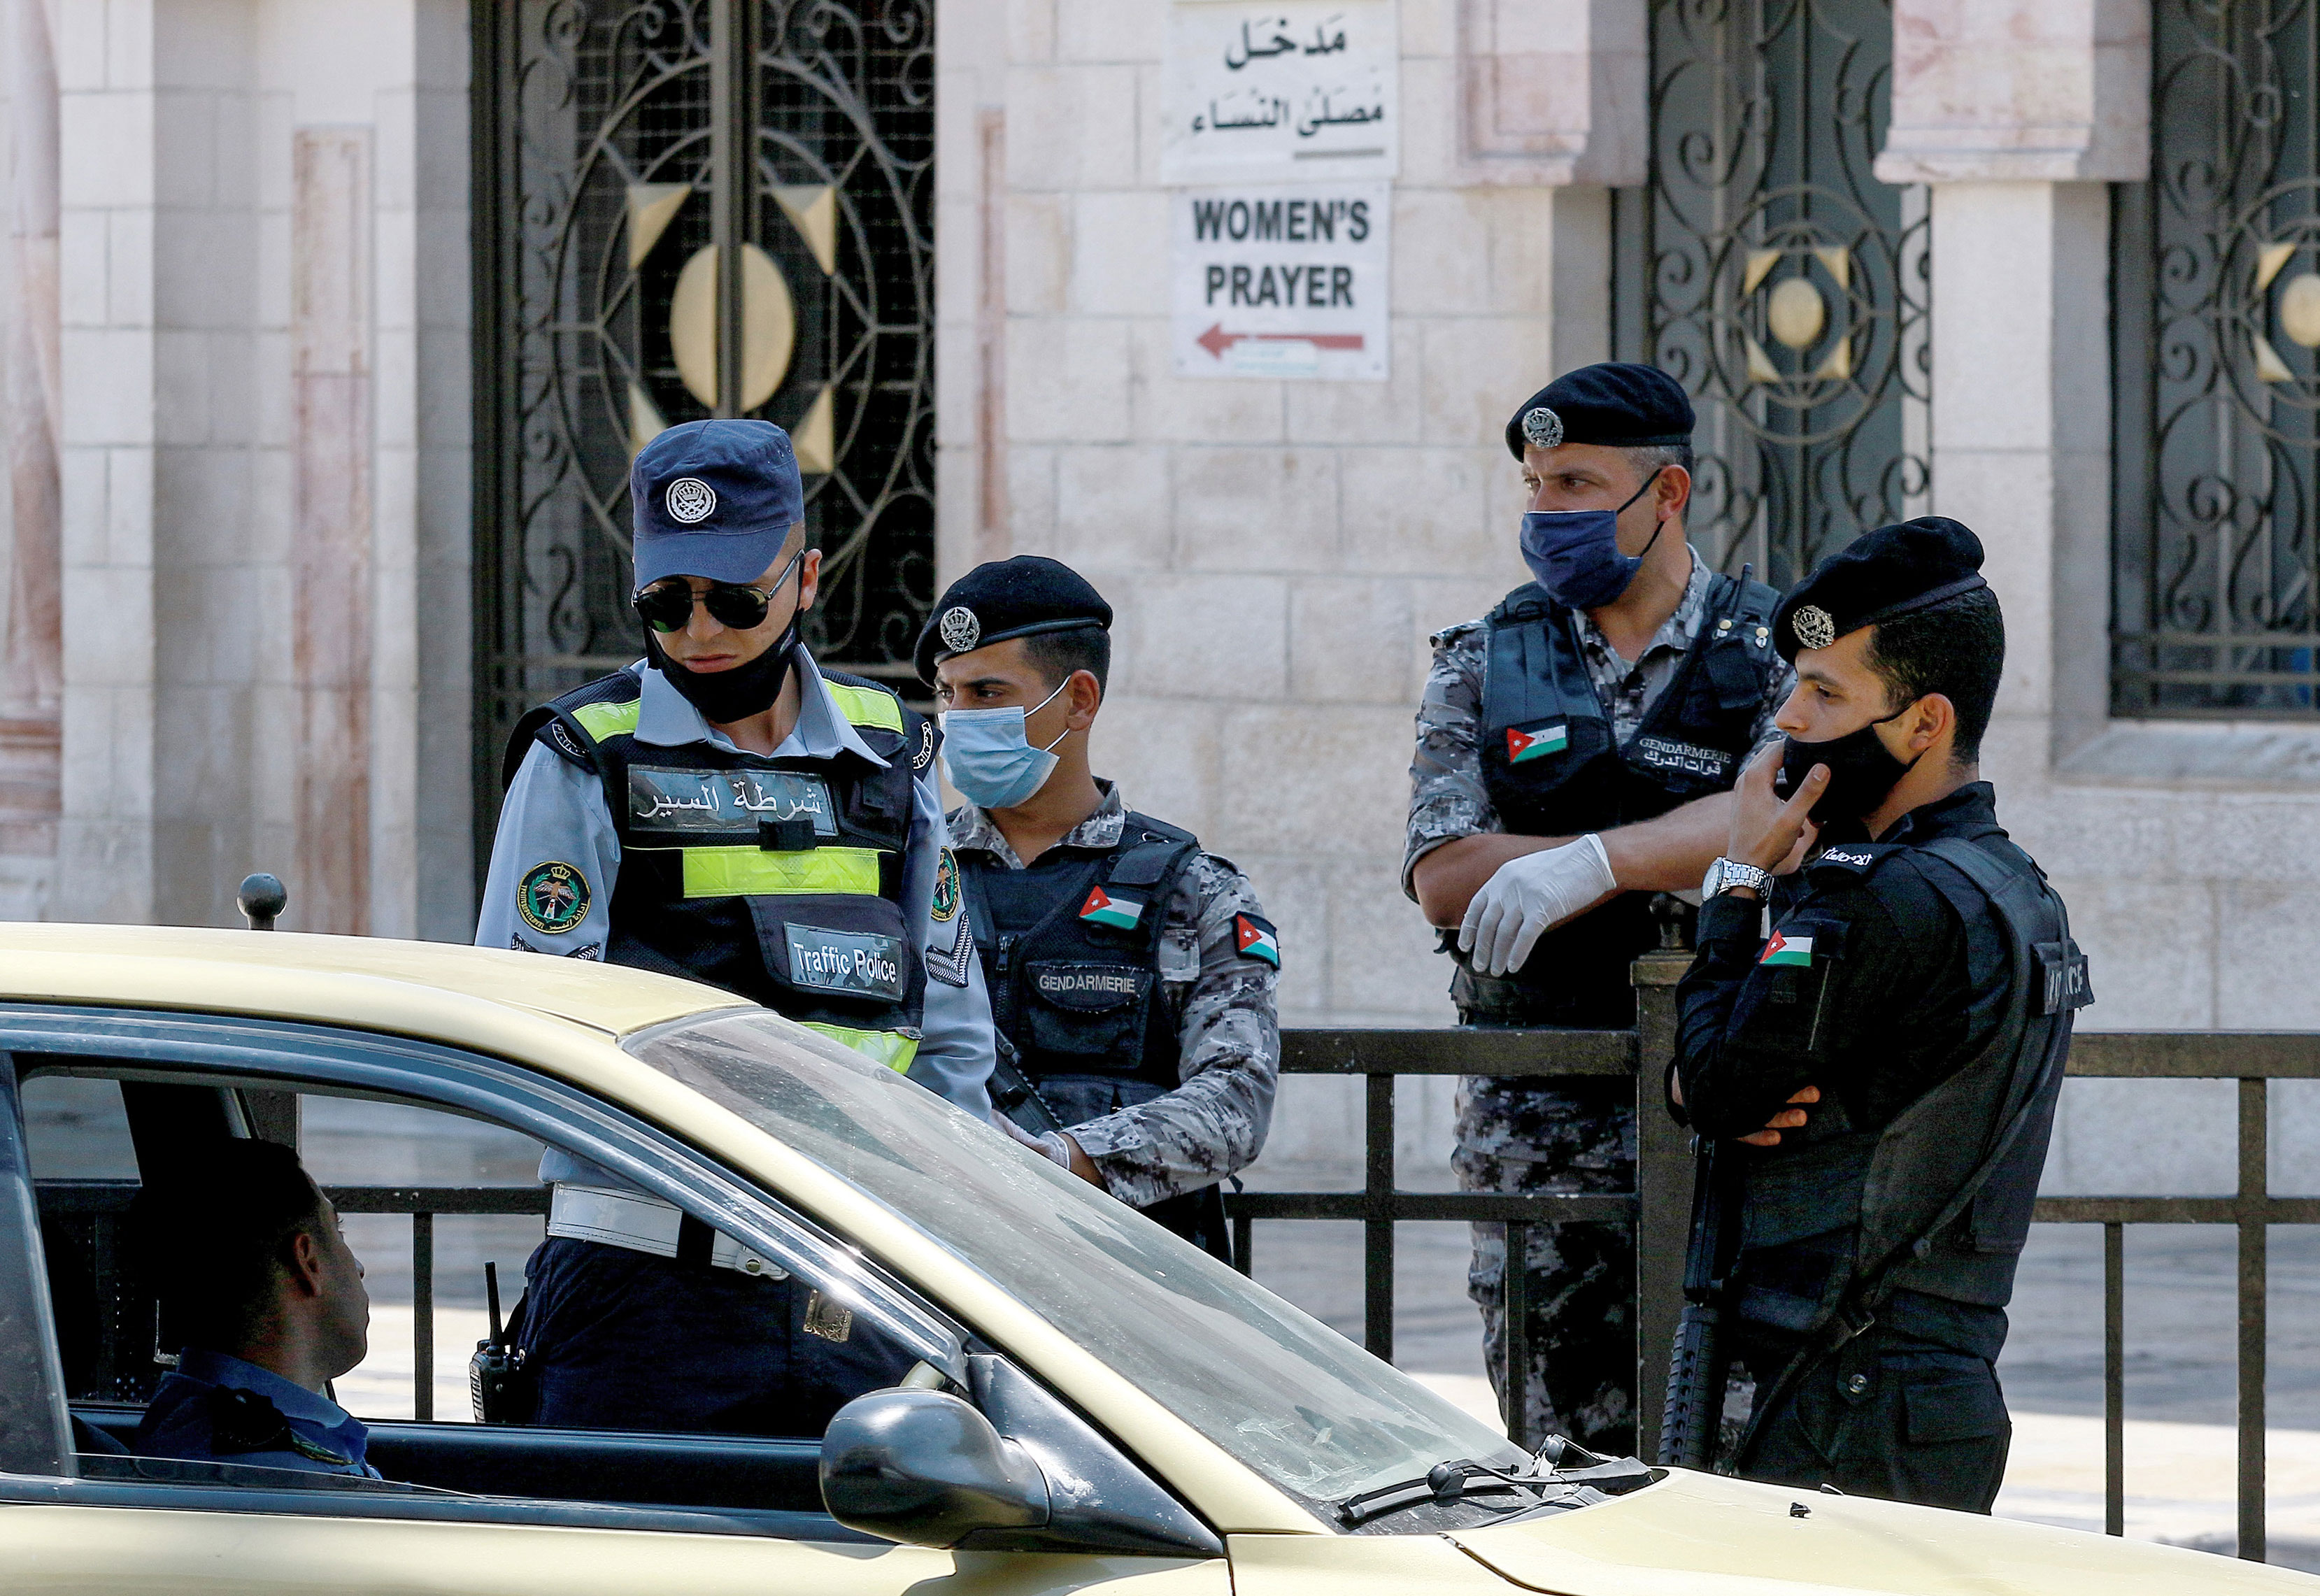 Police officers stop a vehicle outside the Grand Husseini Mosque in Amman, Jordan, while enforcing a curfew on August 28.